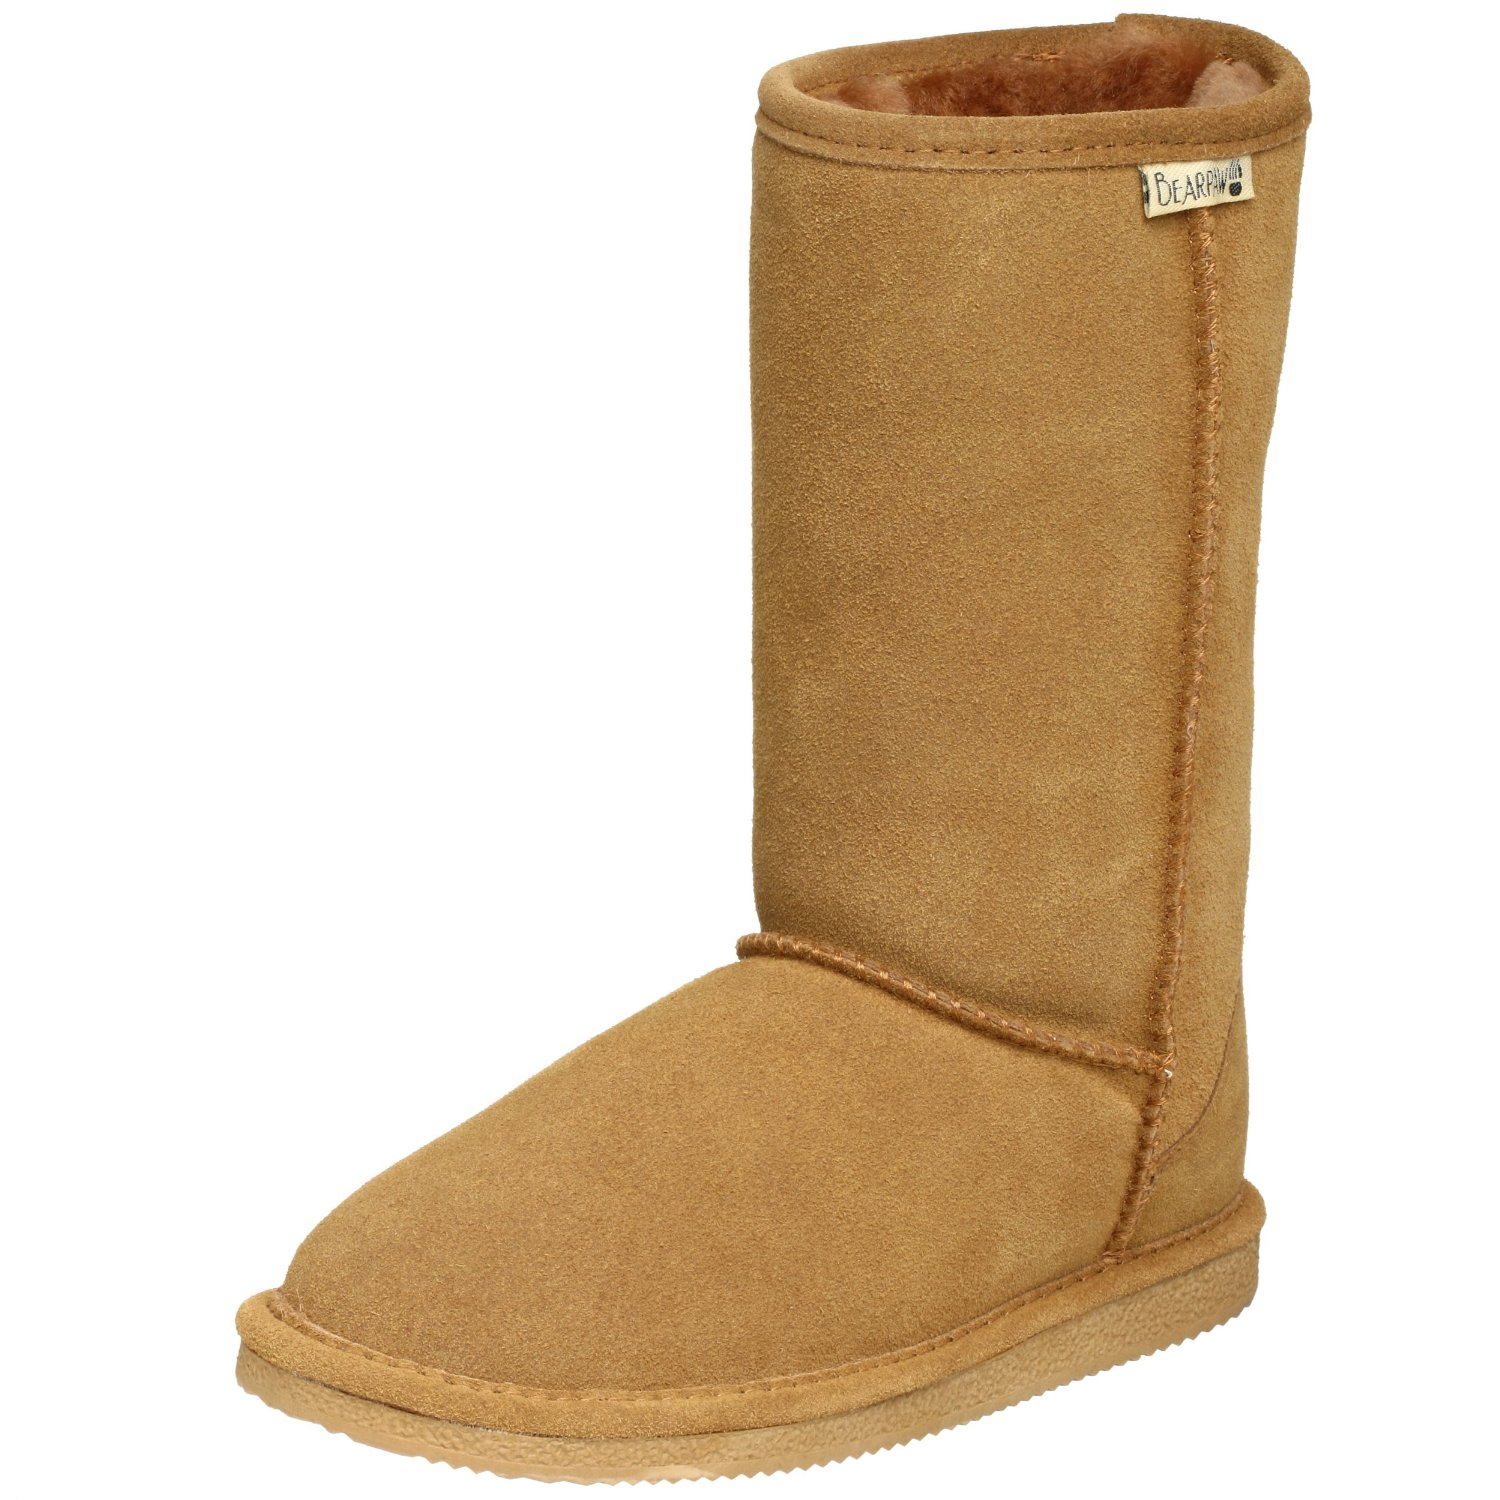 Buy Ugg Australia Girls-Big Kids K Classic Winter Boots: Shop top fashion brands Boots at maump3.ml FREE DELIVERY and Returns possible on eligible purchases.